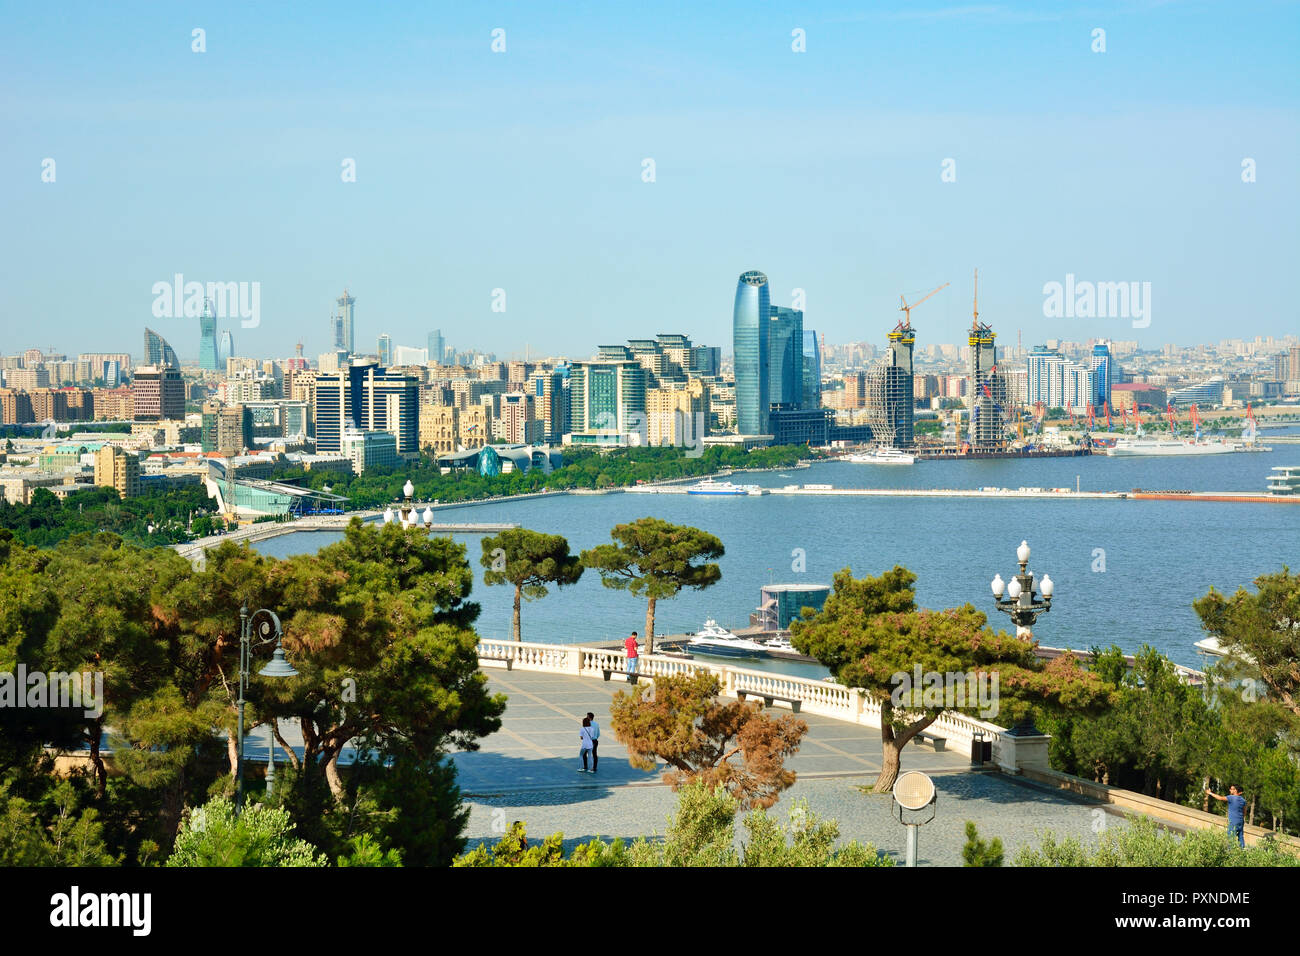 Baku and the Caspian Sea seen from Dagustu Park. Azerbaijan - Stock Image